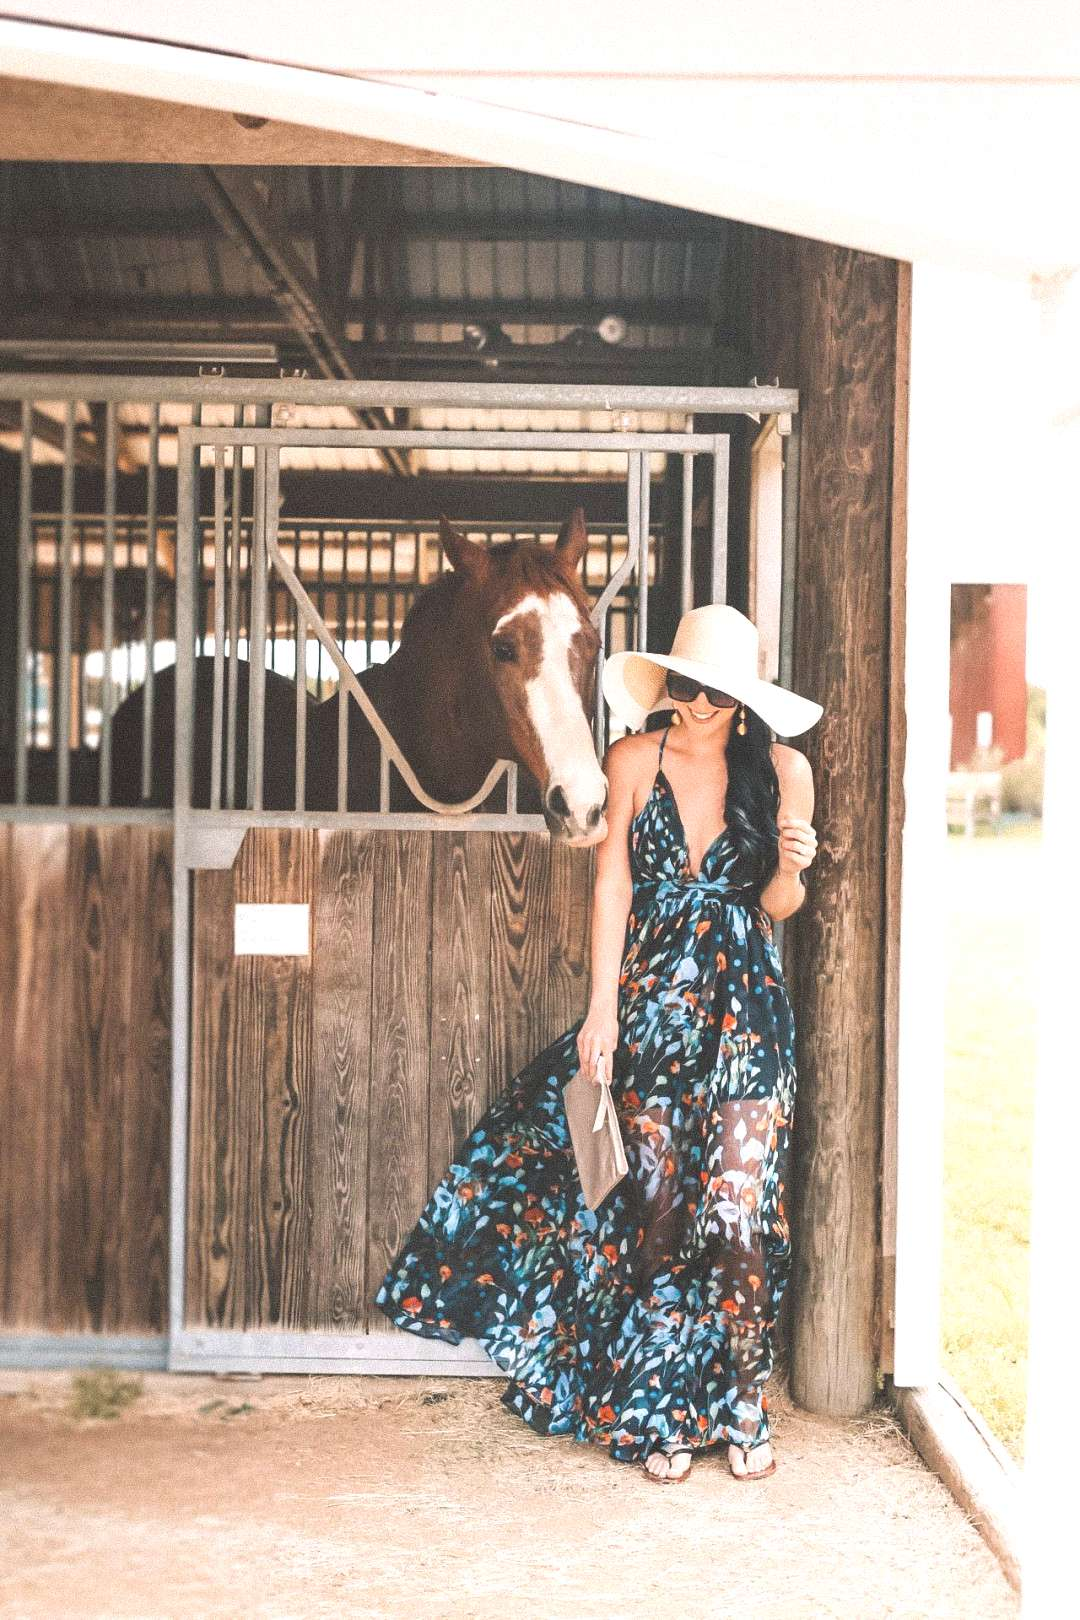 Unusual Fashion Ideas DTKAustin shares three of her favorite Kentucky Derby inspired looks. Whether